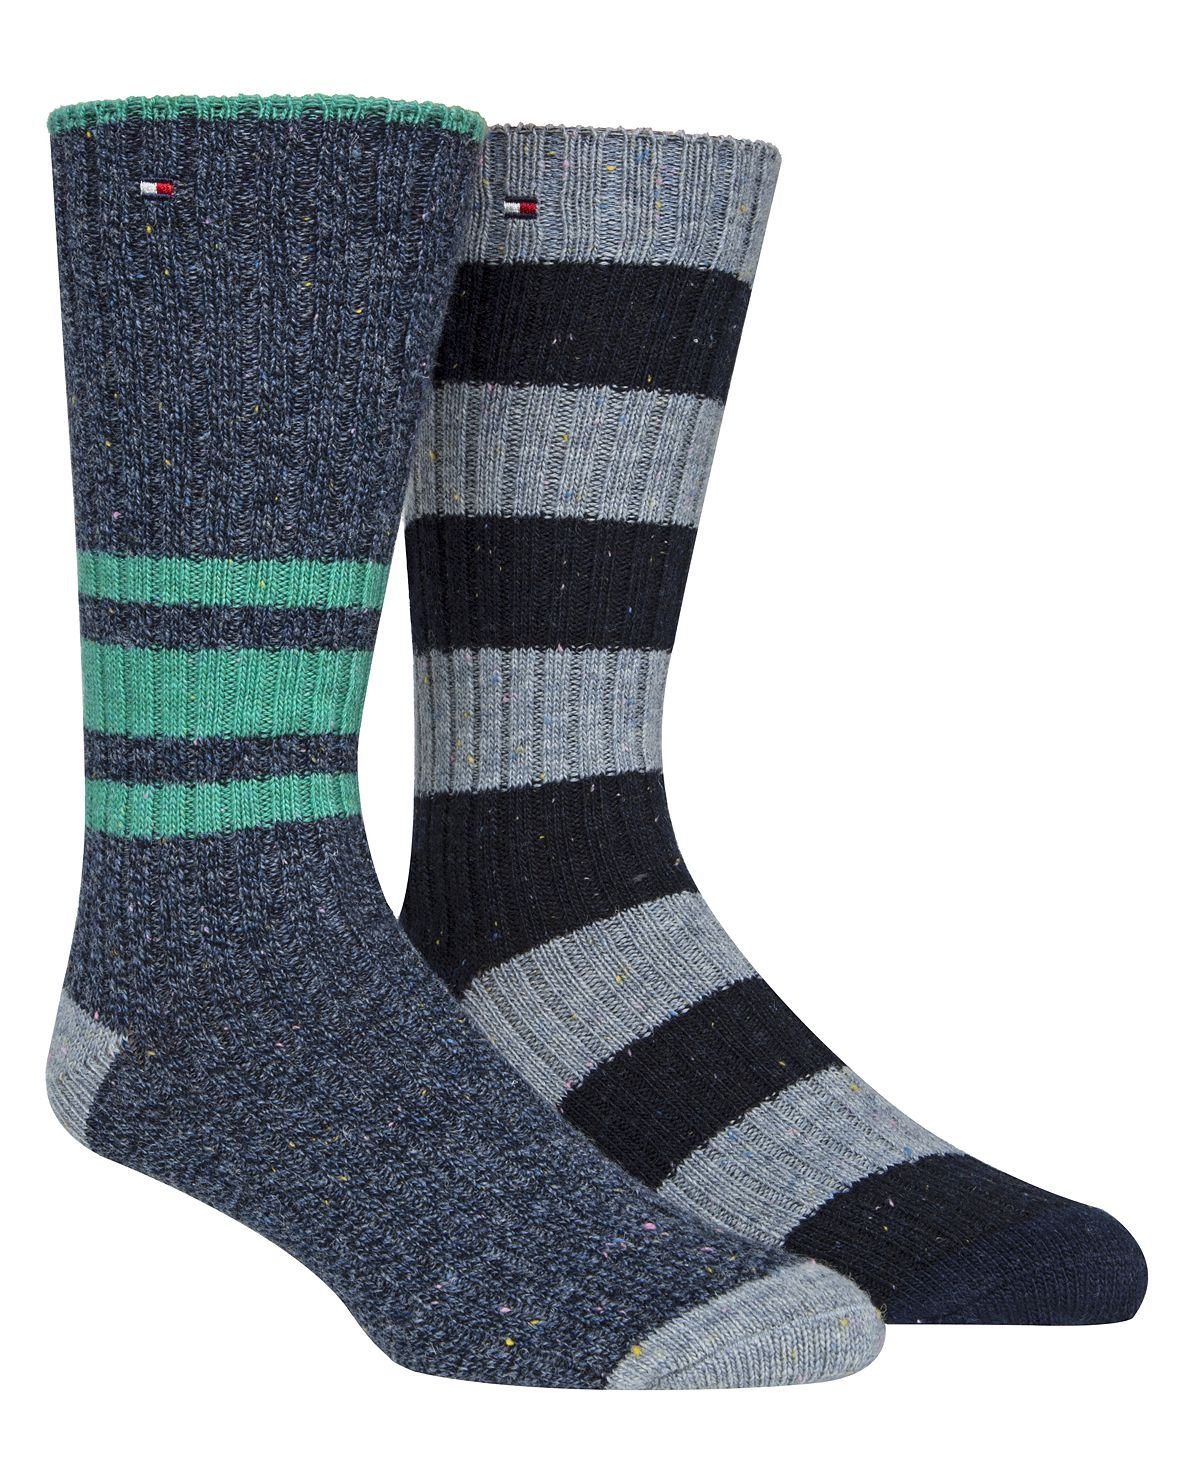 Tommy Hilfiger 2-pk. Striped Boot Socks Denim Heather